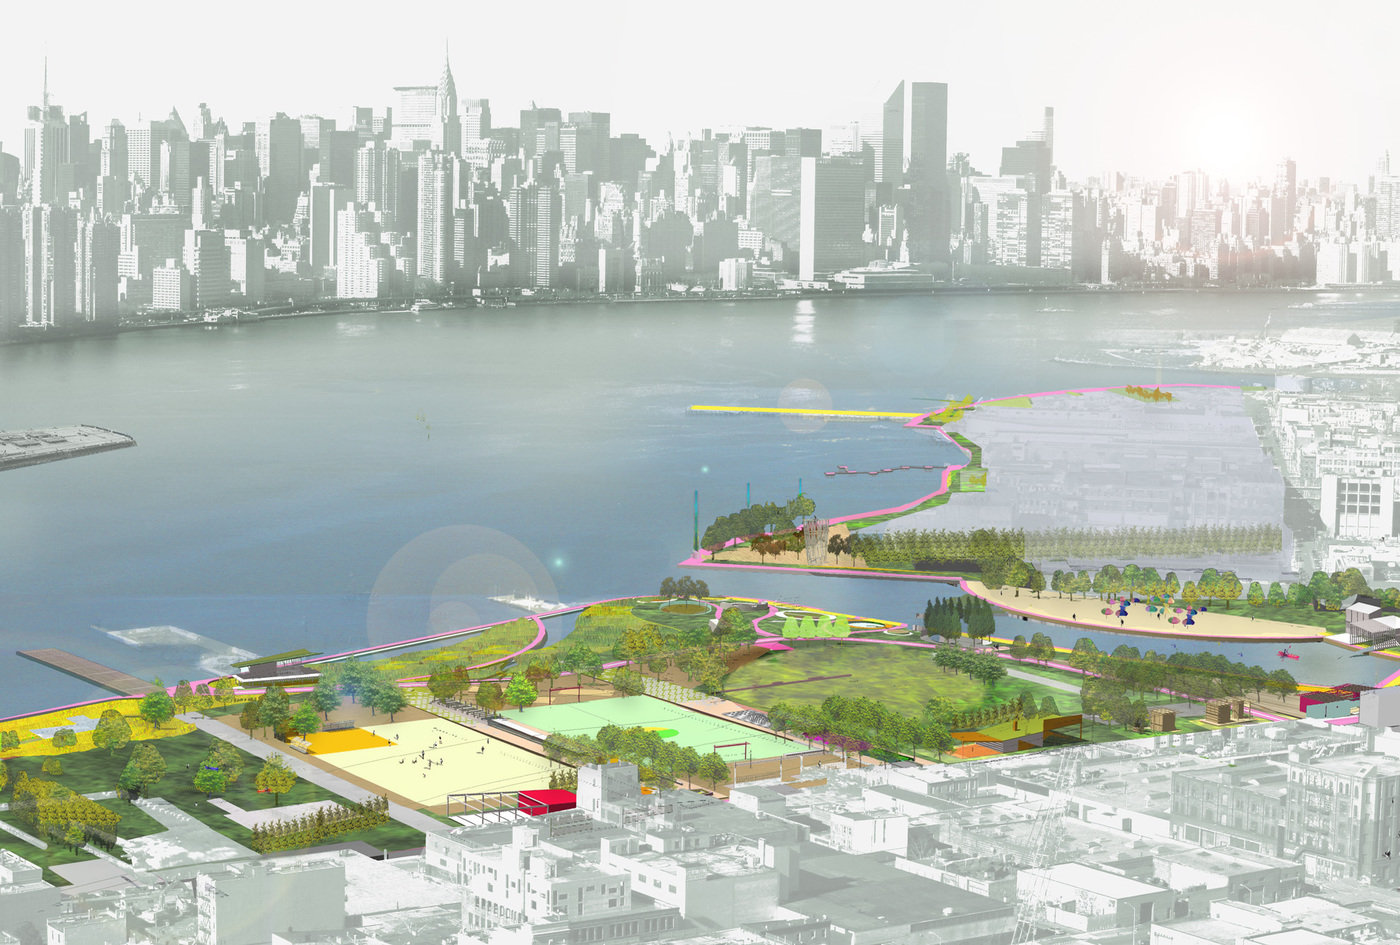 Greenpoint-Williamsburg Waterfront Open Space Master Plan